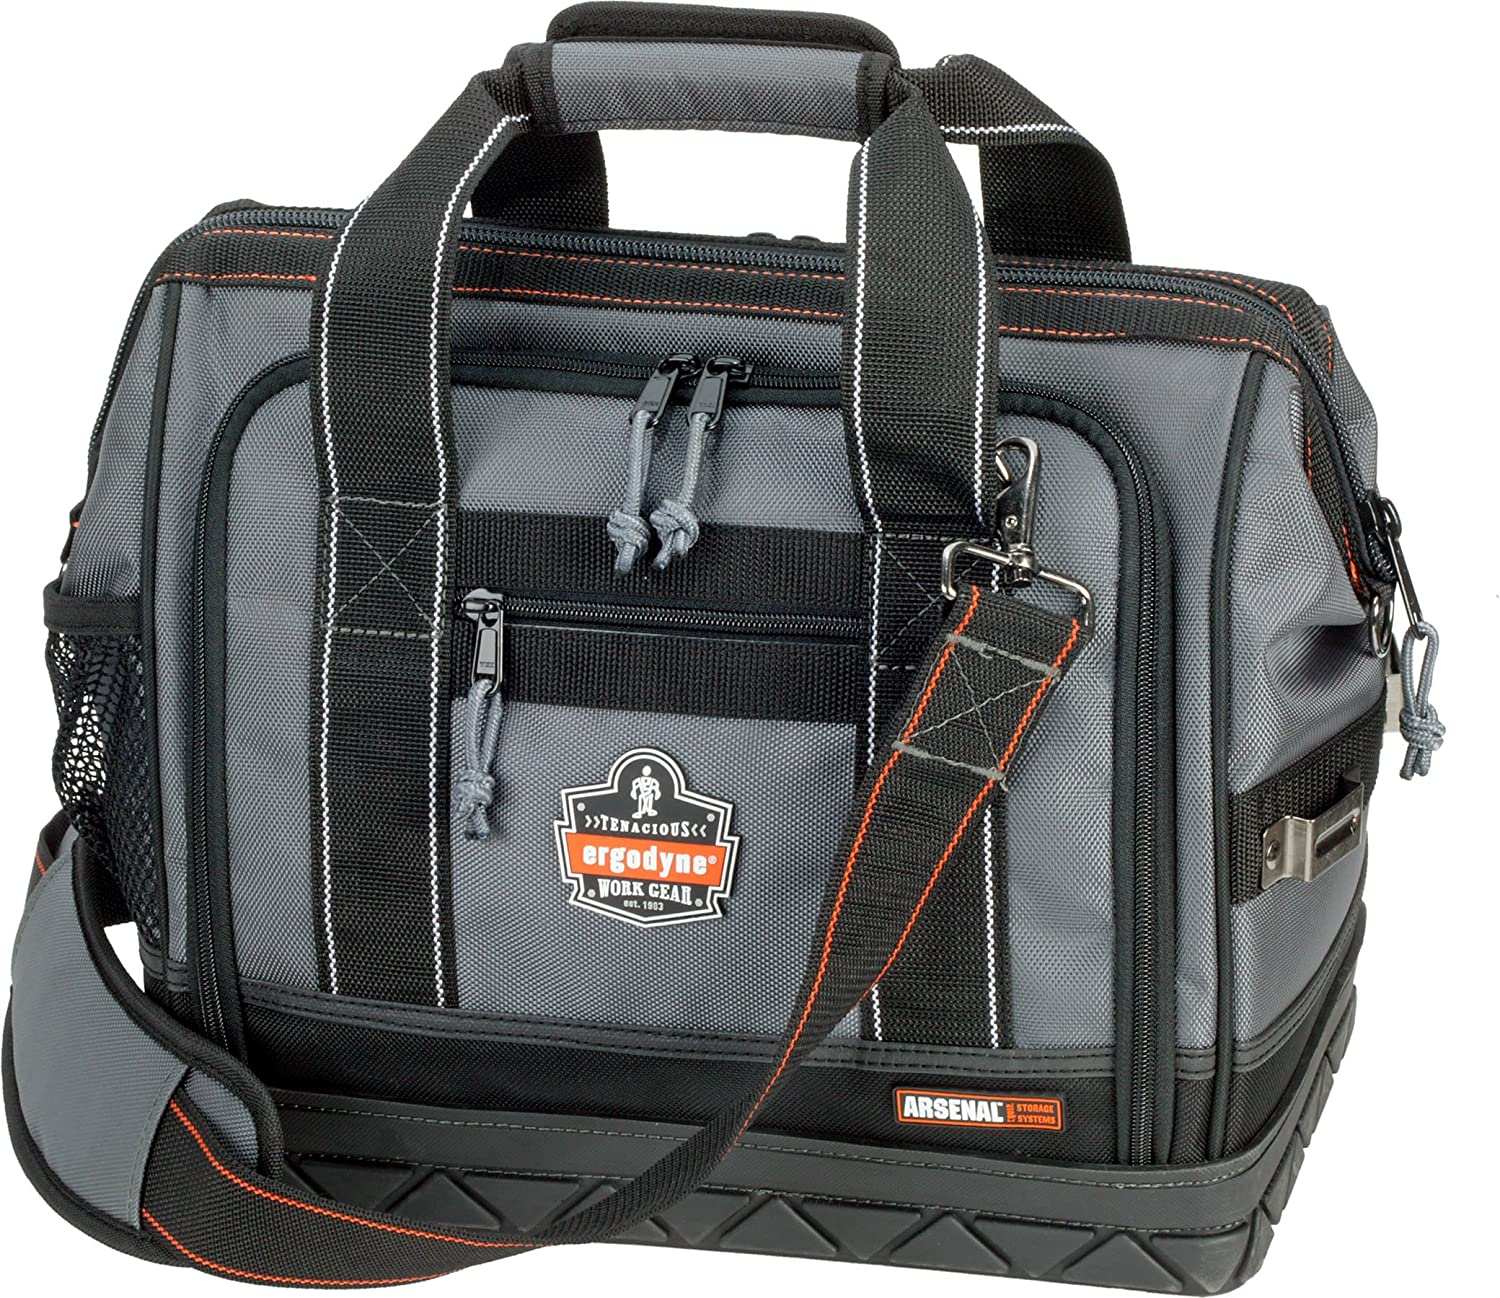 Ergodyne Arsenal 5817 Tool Bag, Zip Open Sides, 61-Pockets, Medium,Gray